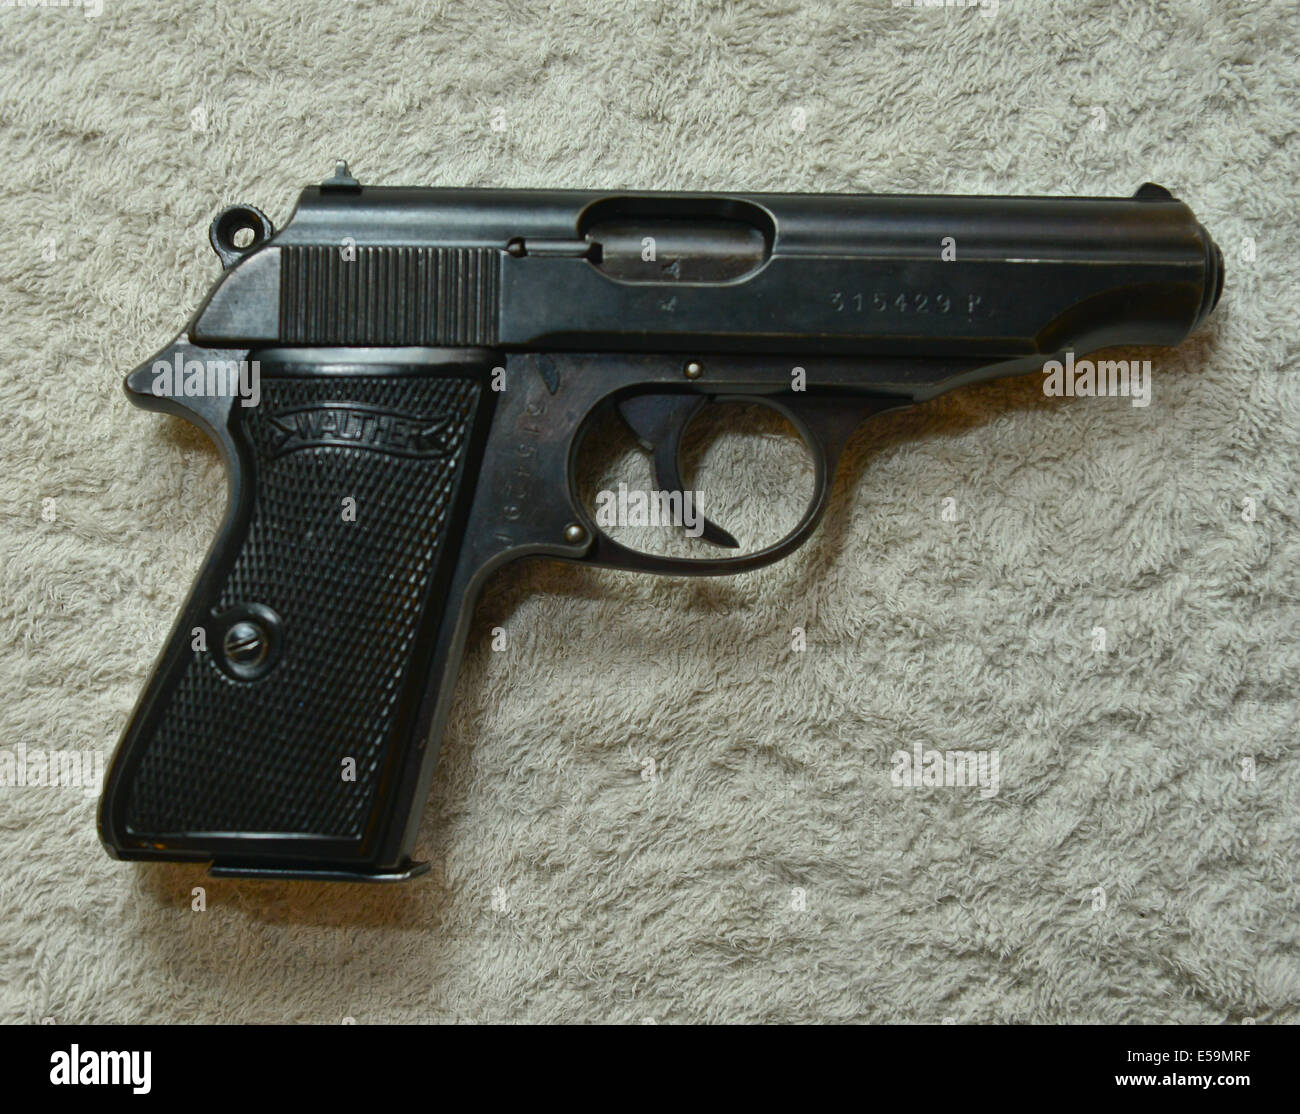 Picture By:Jules Annan Picture Shows:Nazi SS and Police  issued Walther PPK 7.65 calibre  pistols Date ; 08/07/2014 - Stock Image